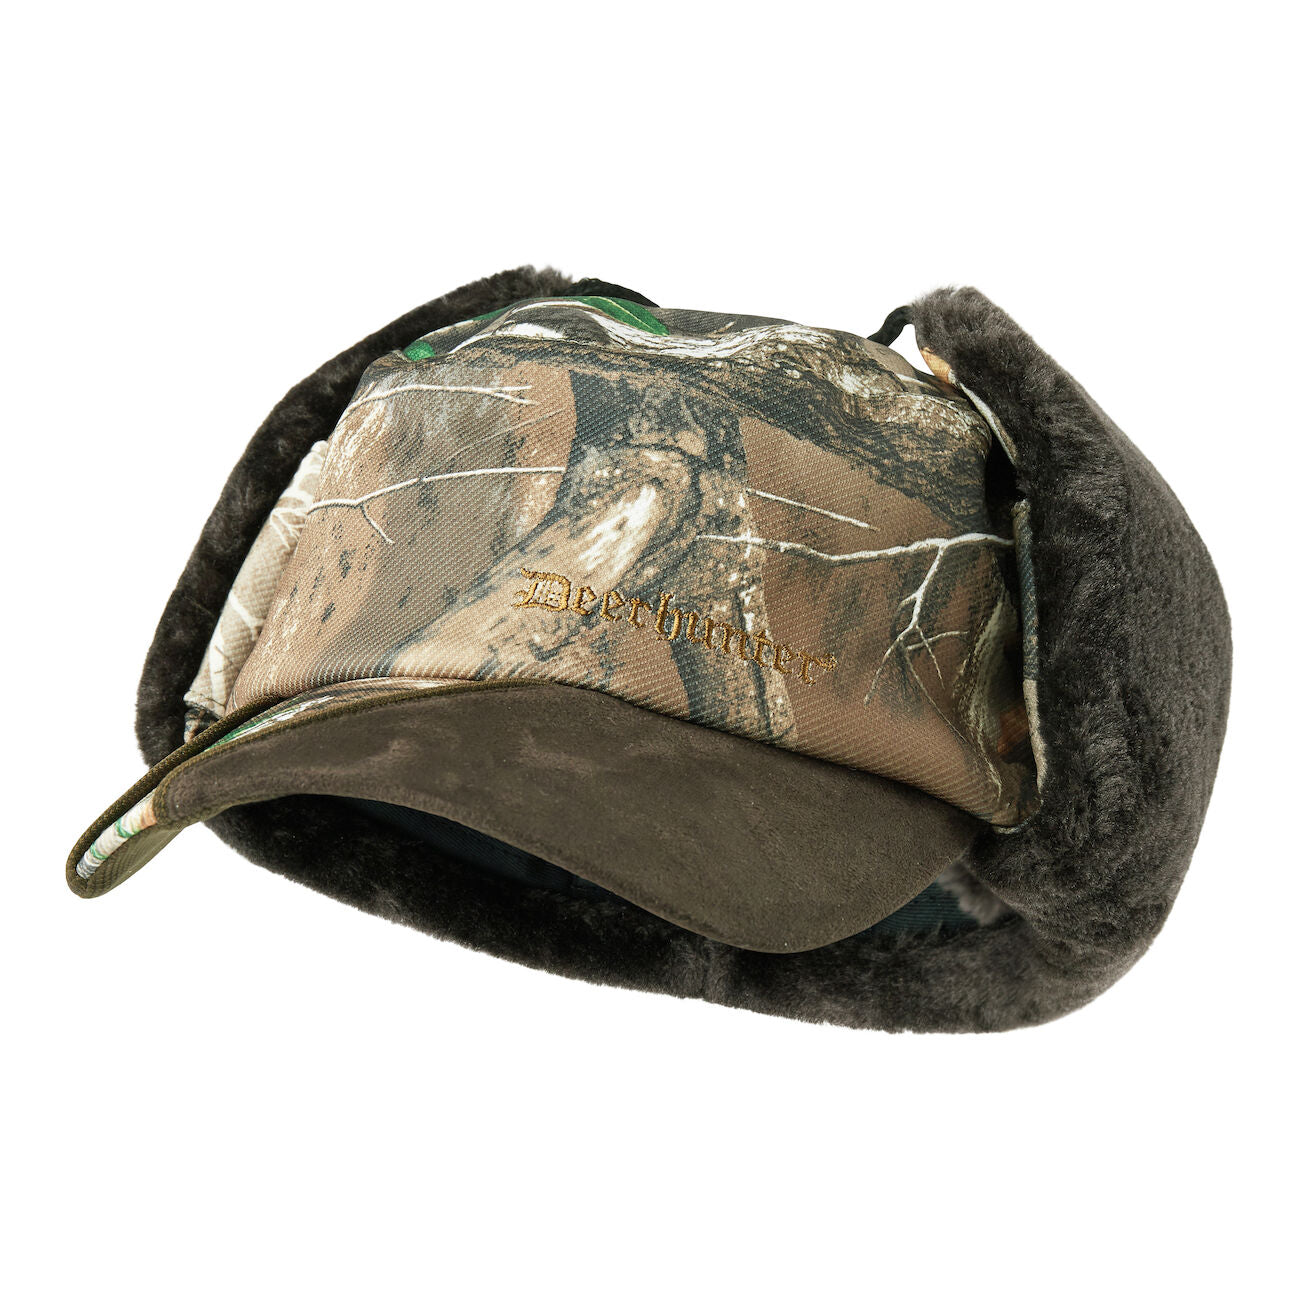 Deerhunter Muflon Winter Hat - Realtree Edge